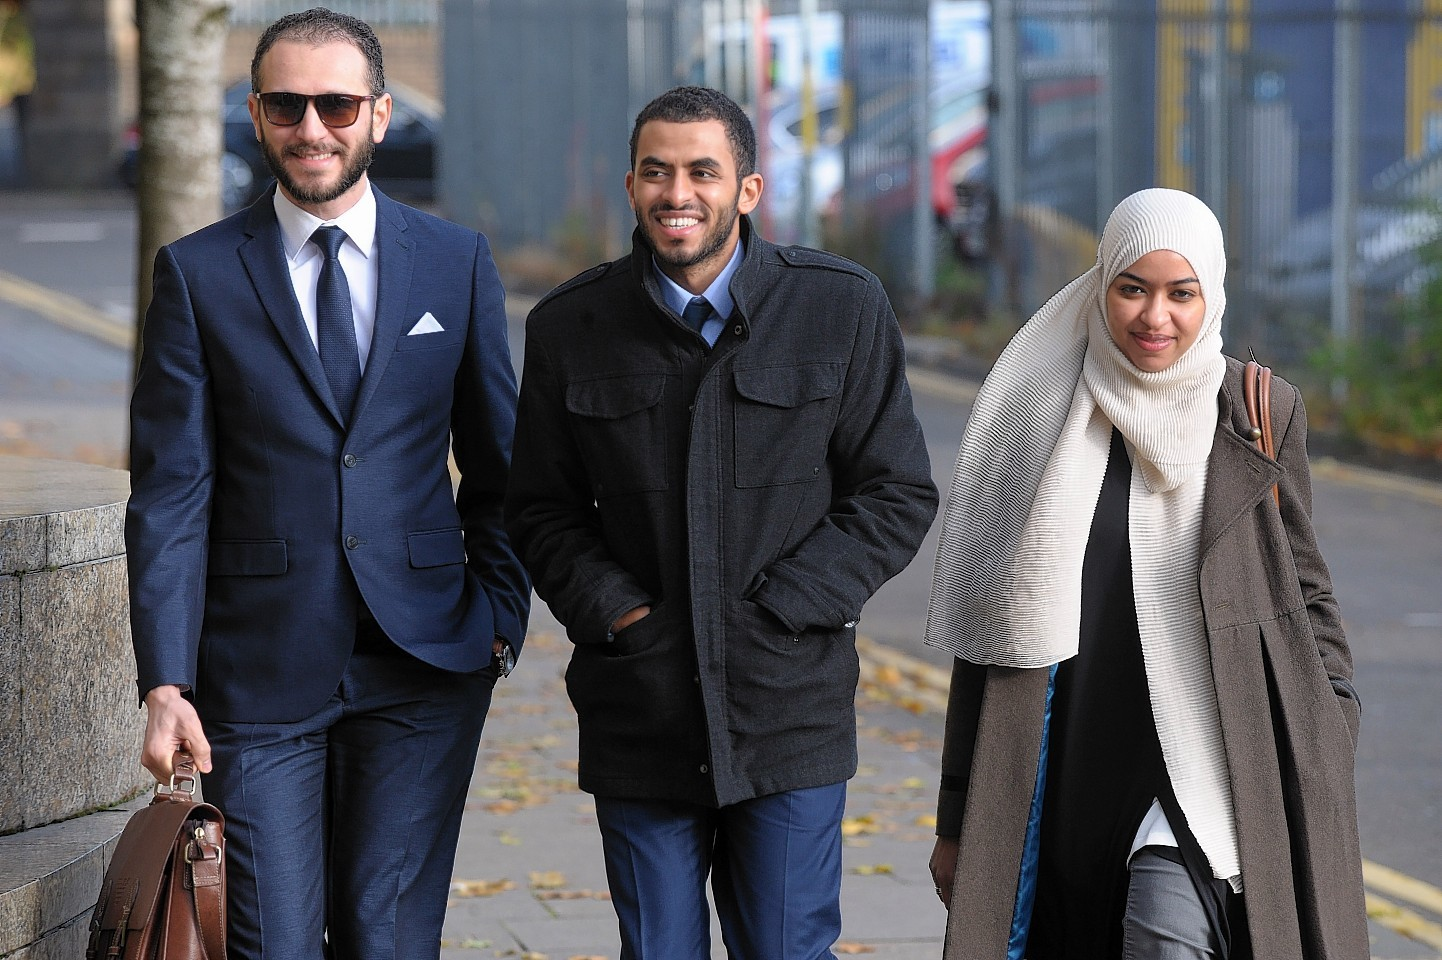 Yousif Baldri ( centre) arriving at the High Court Glasgow